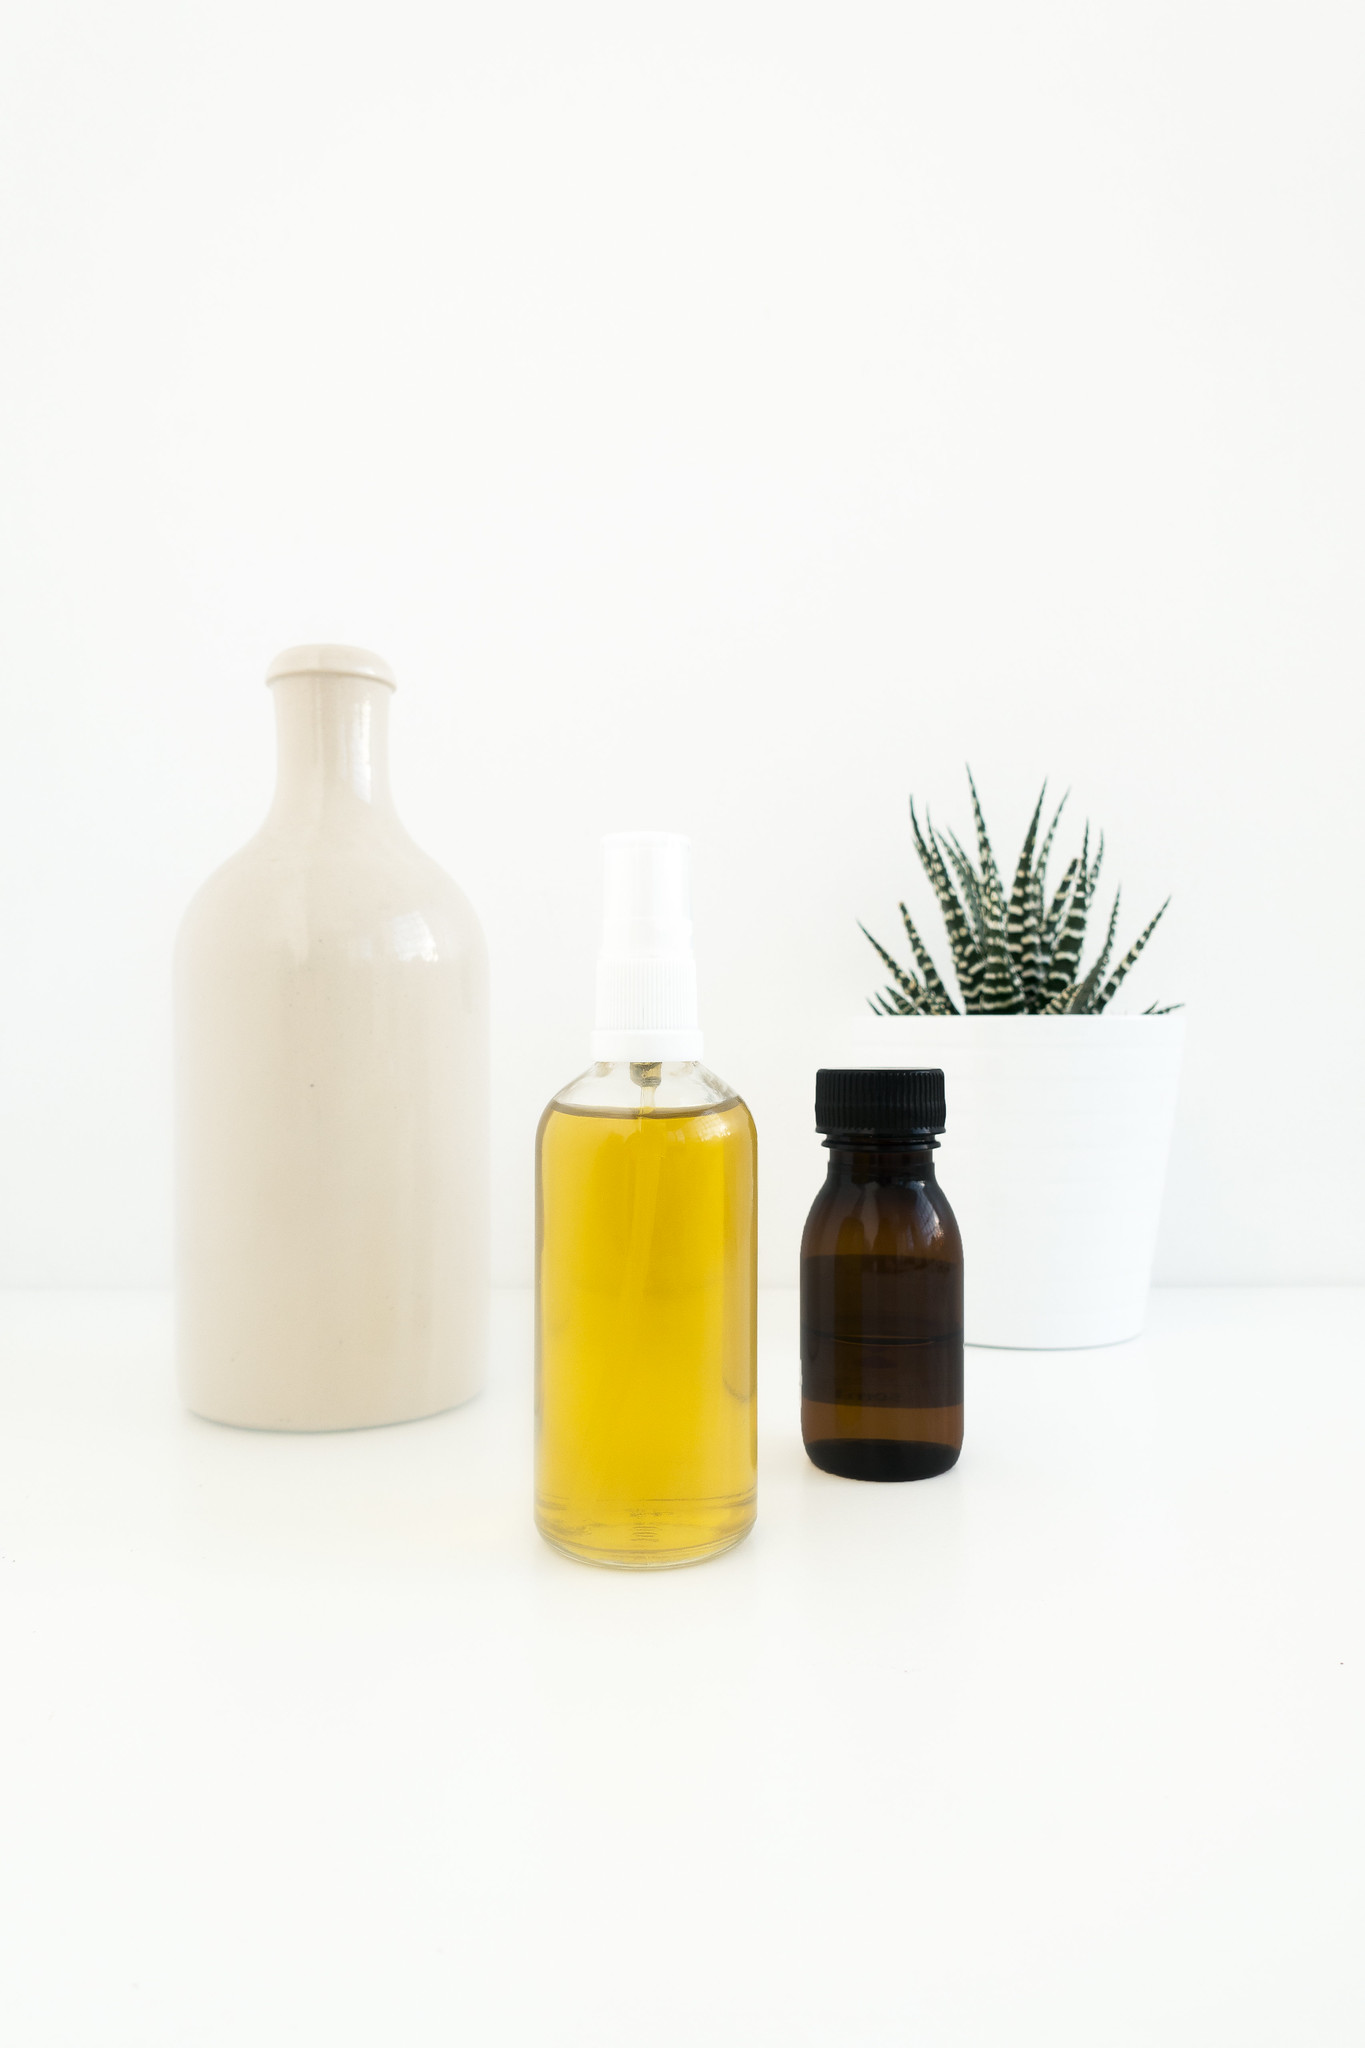 A Simple And Natural Oil Cleanser You Can Make Yourself